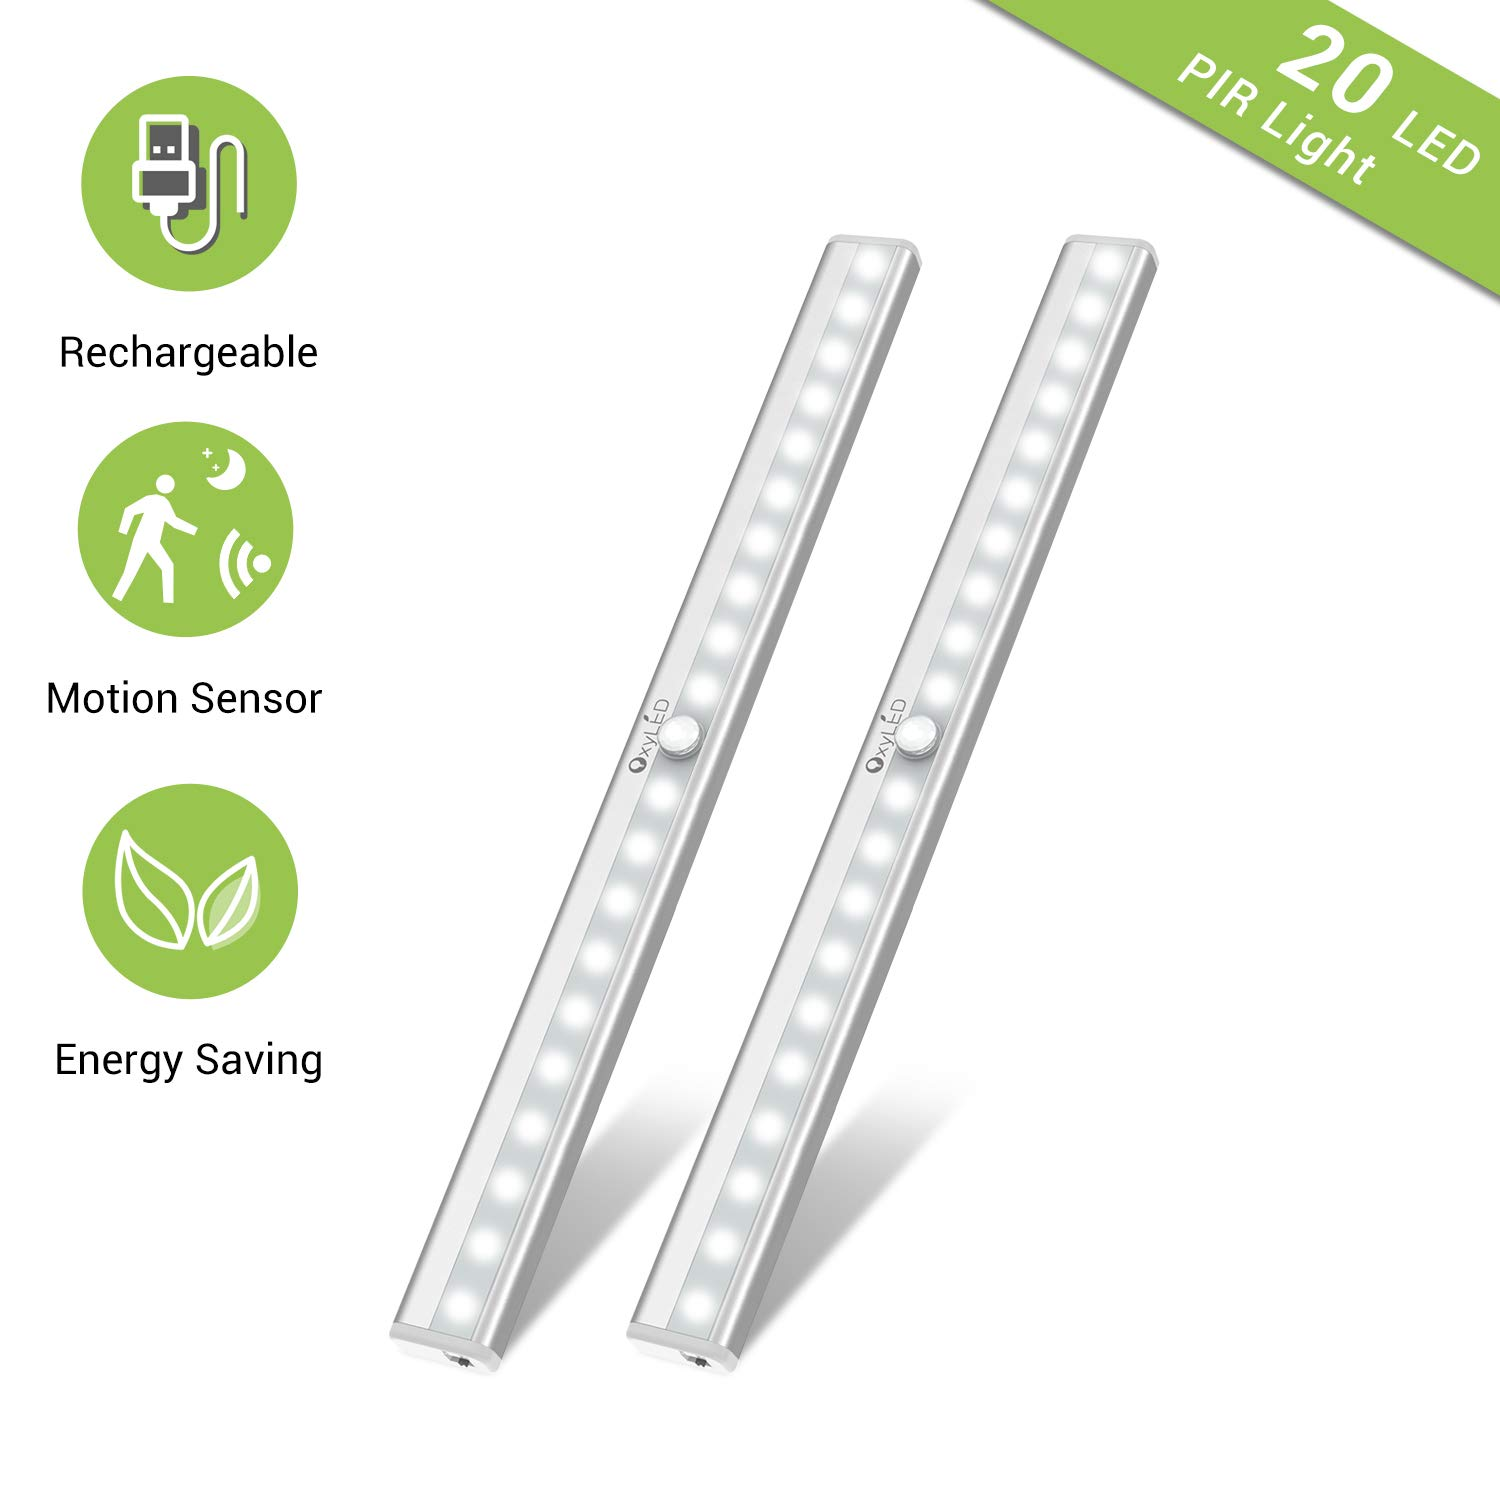 Under Cabinet Lighting, Motion Sensor Closet Lights OxyLED 20 LED USB Rechargeable Under Cabinet Lights Wireless Under Counter Lighting, Motion Led Light Bar for Closet, Cabinet T-02S, 2 Pack